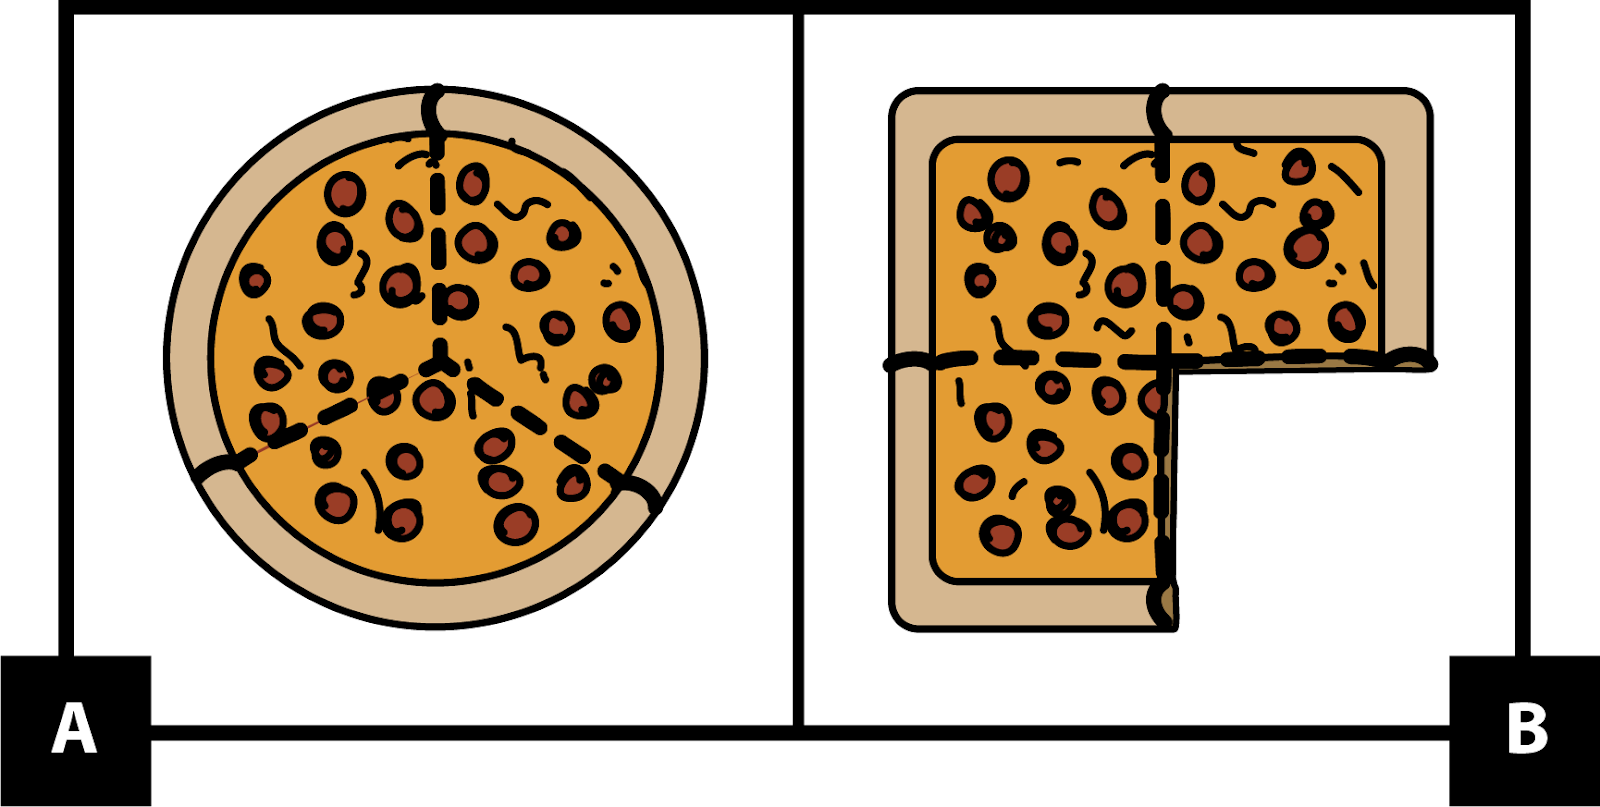 A: a round pizza cut into 3 equal pieces. B: a square pizza cut into 4 equal pieces. 1 piece is missing.